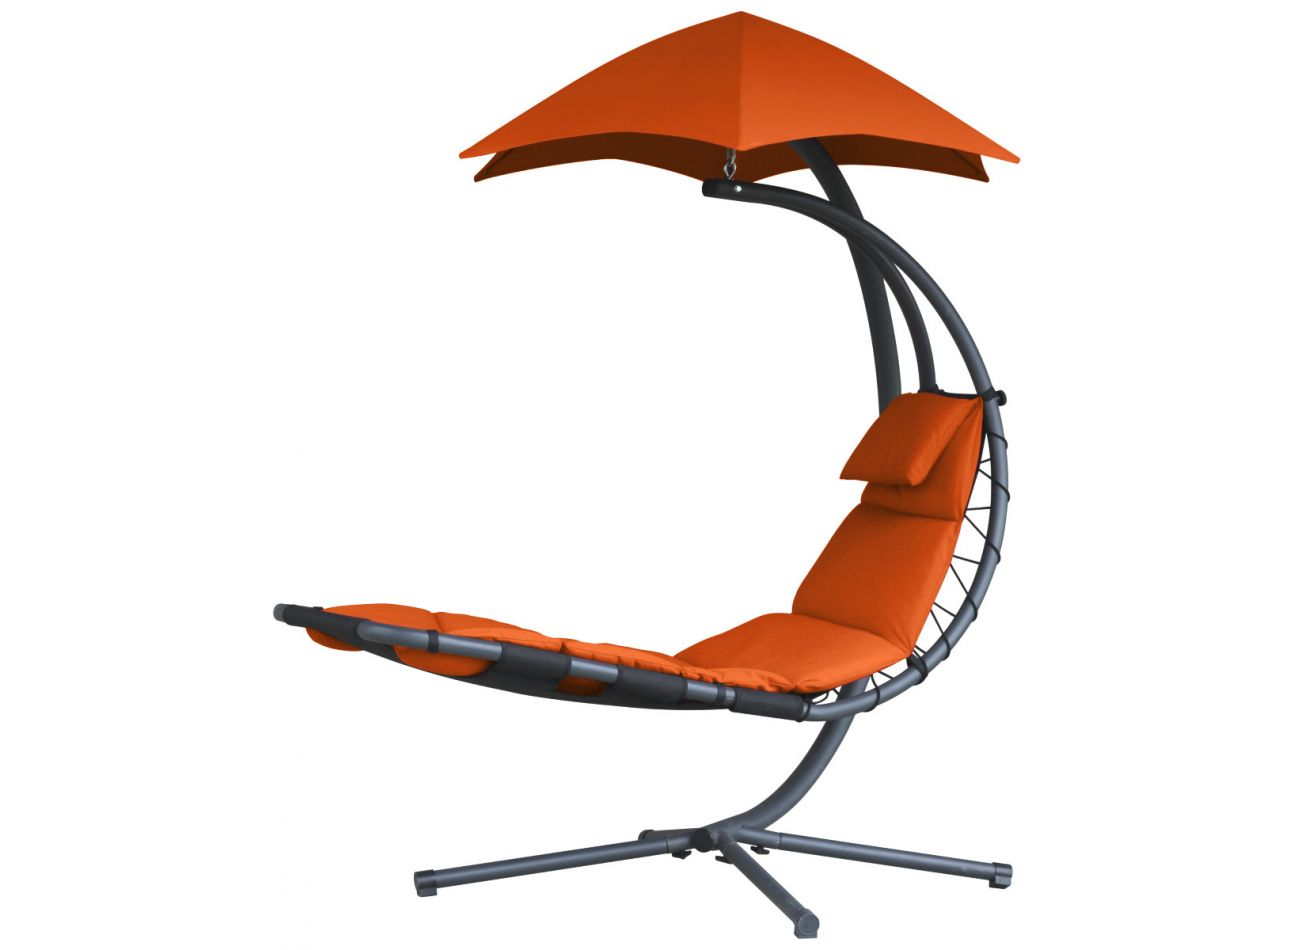 Original Dream Chair Orange